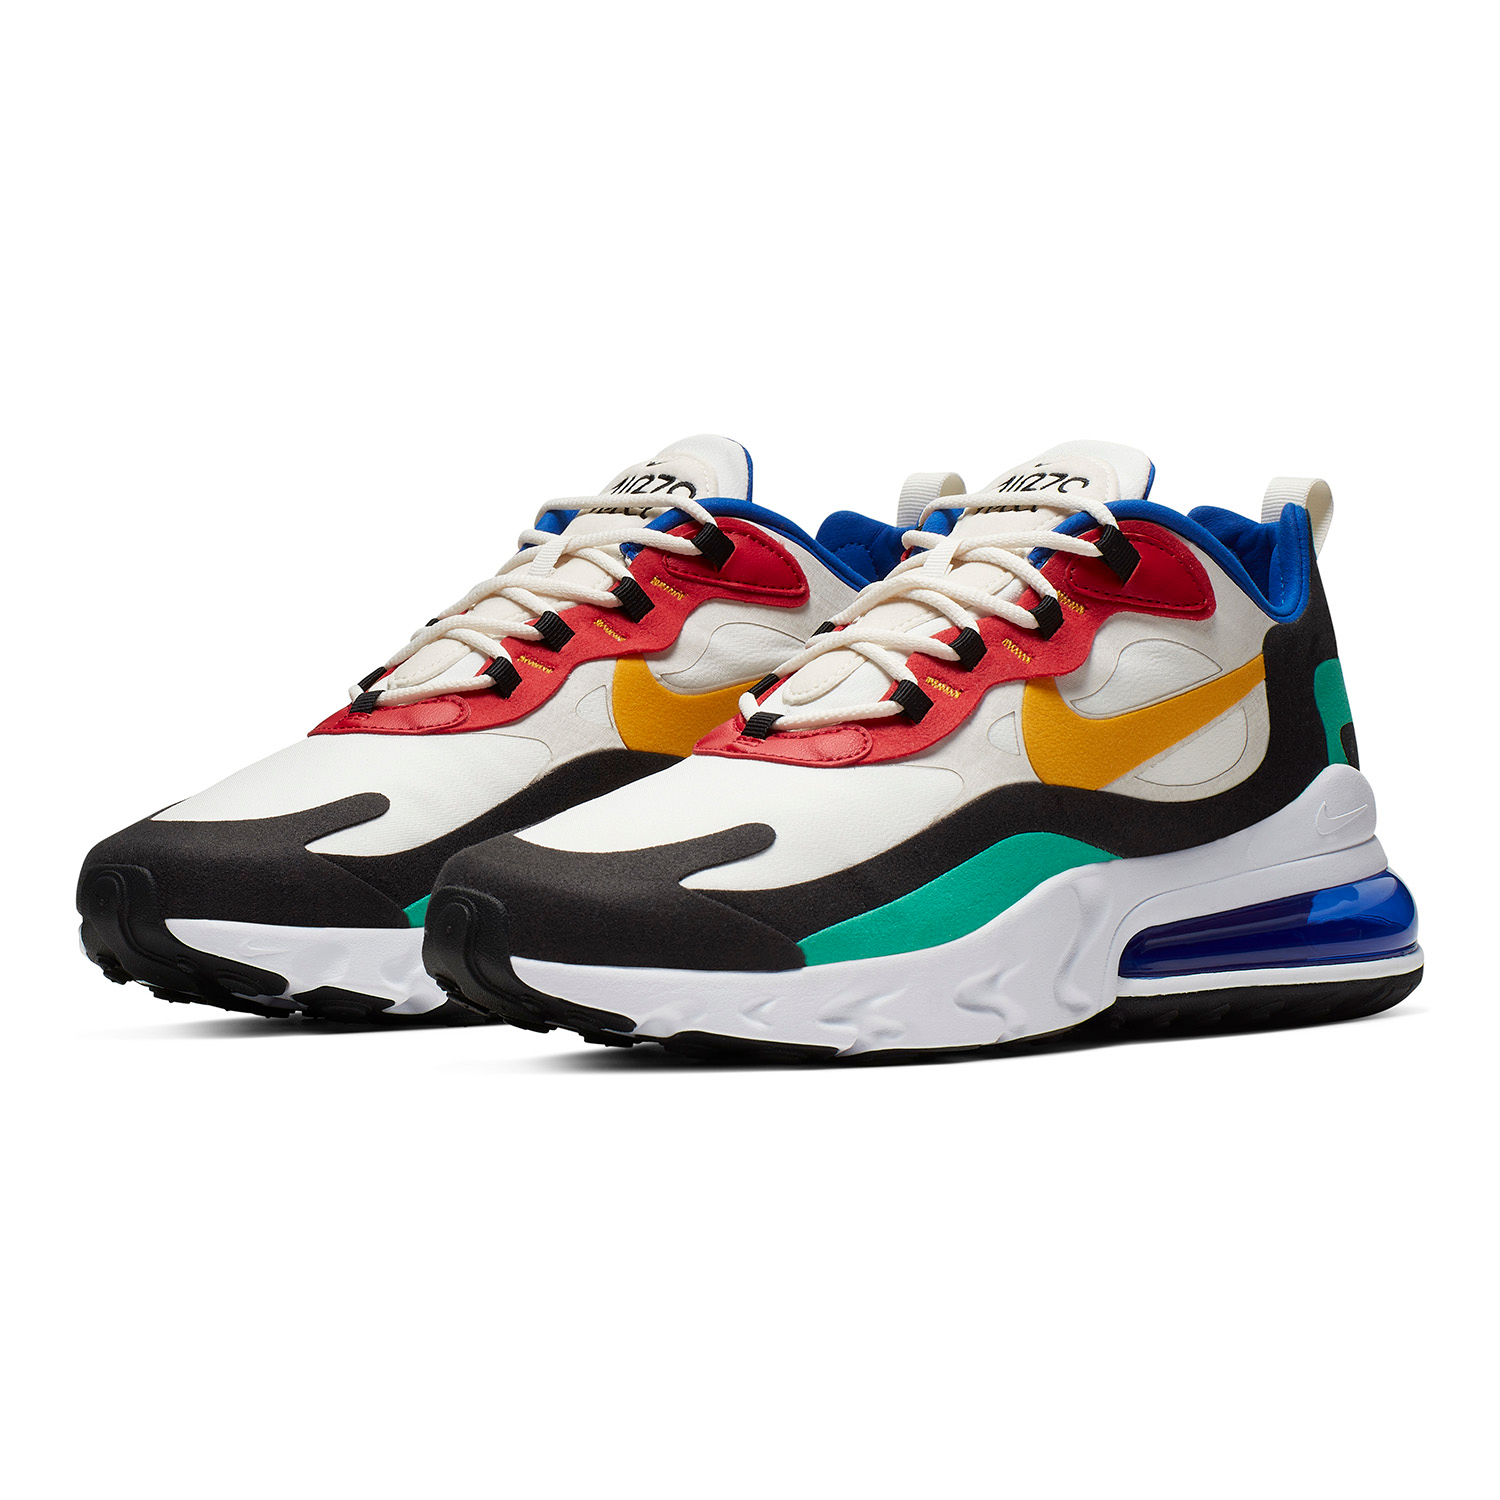 Nike Prezentuje Nowy Model Butow Air Max 270 React Nike Air Max Nike Shoes Air Max Air Max